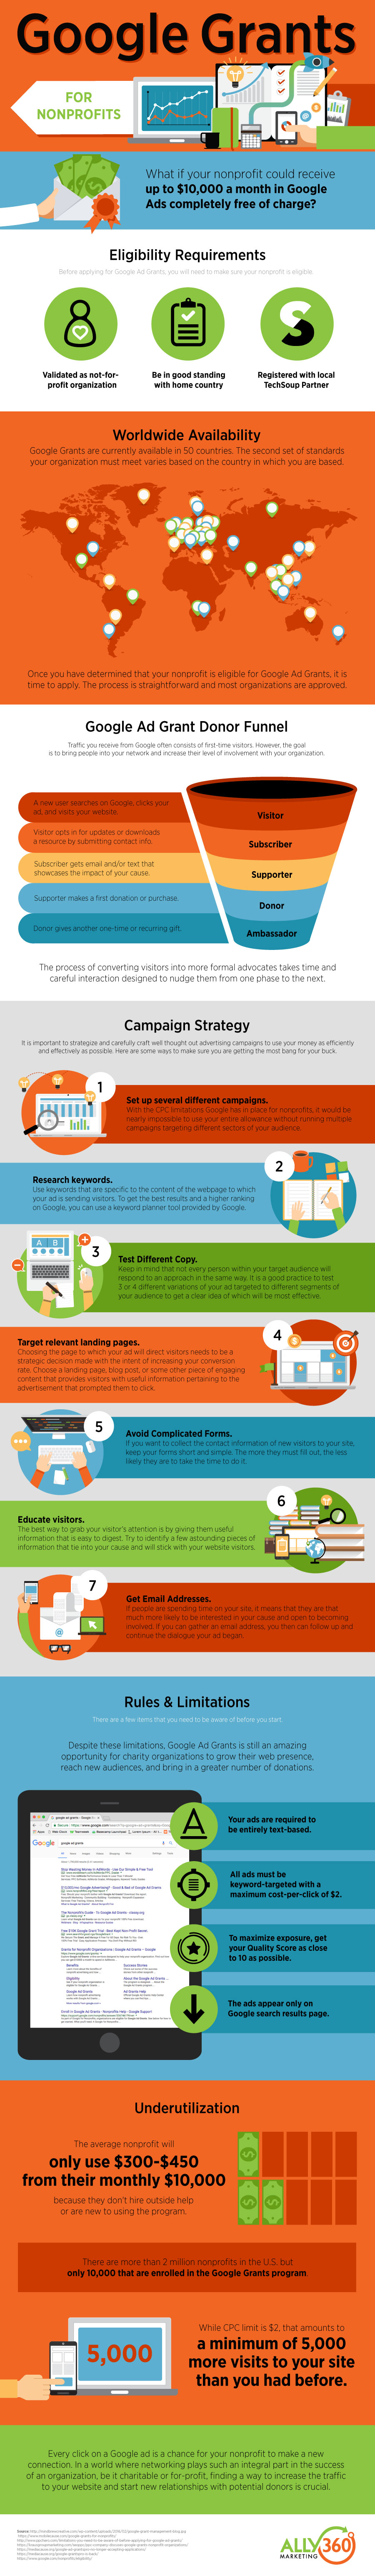 Ally360 Google Grants for Nonprofits Infographic